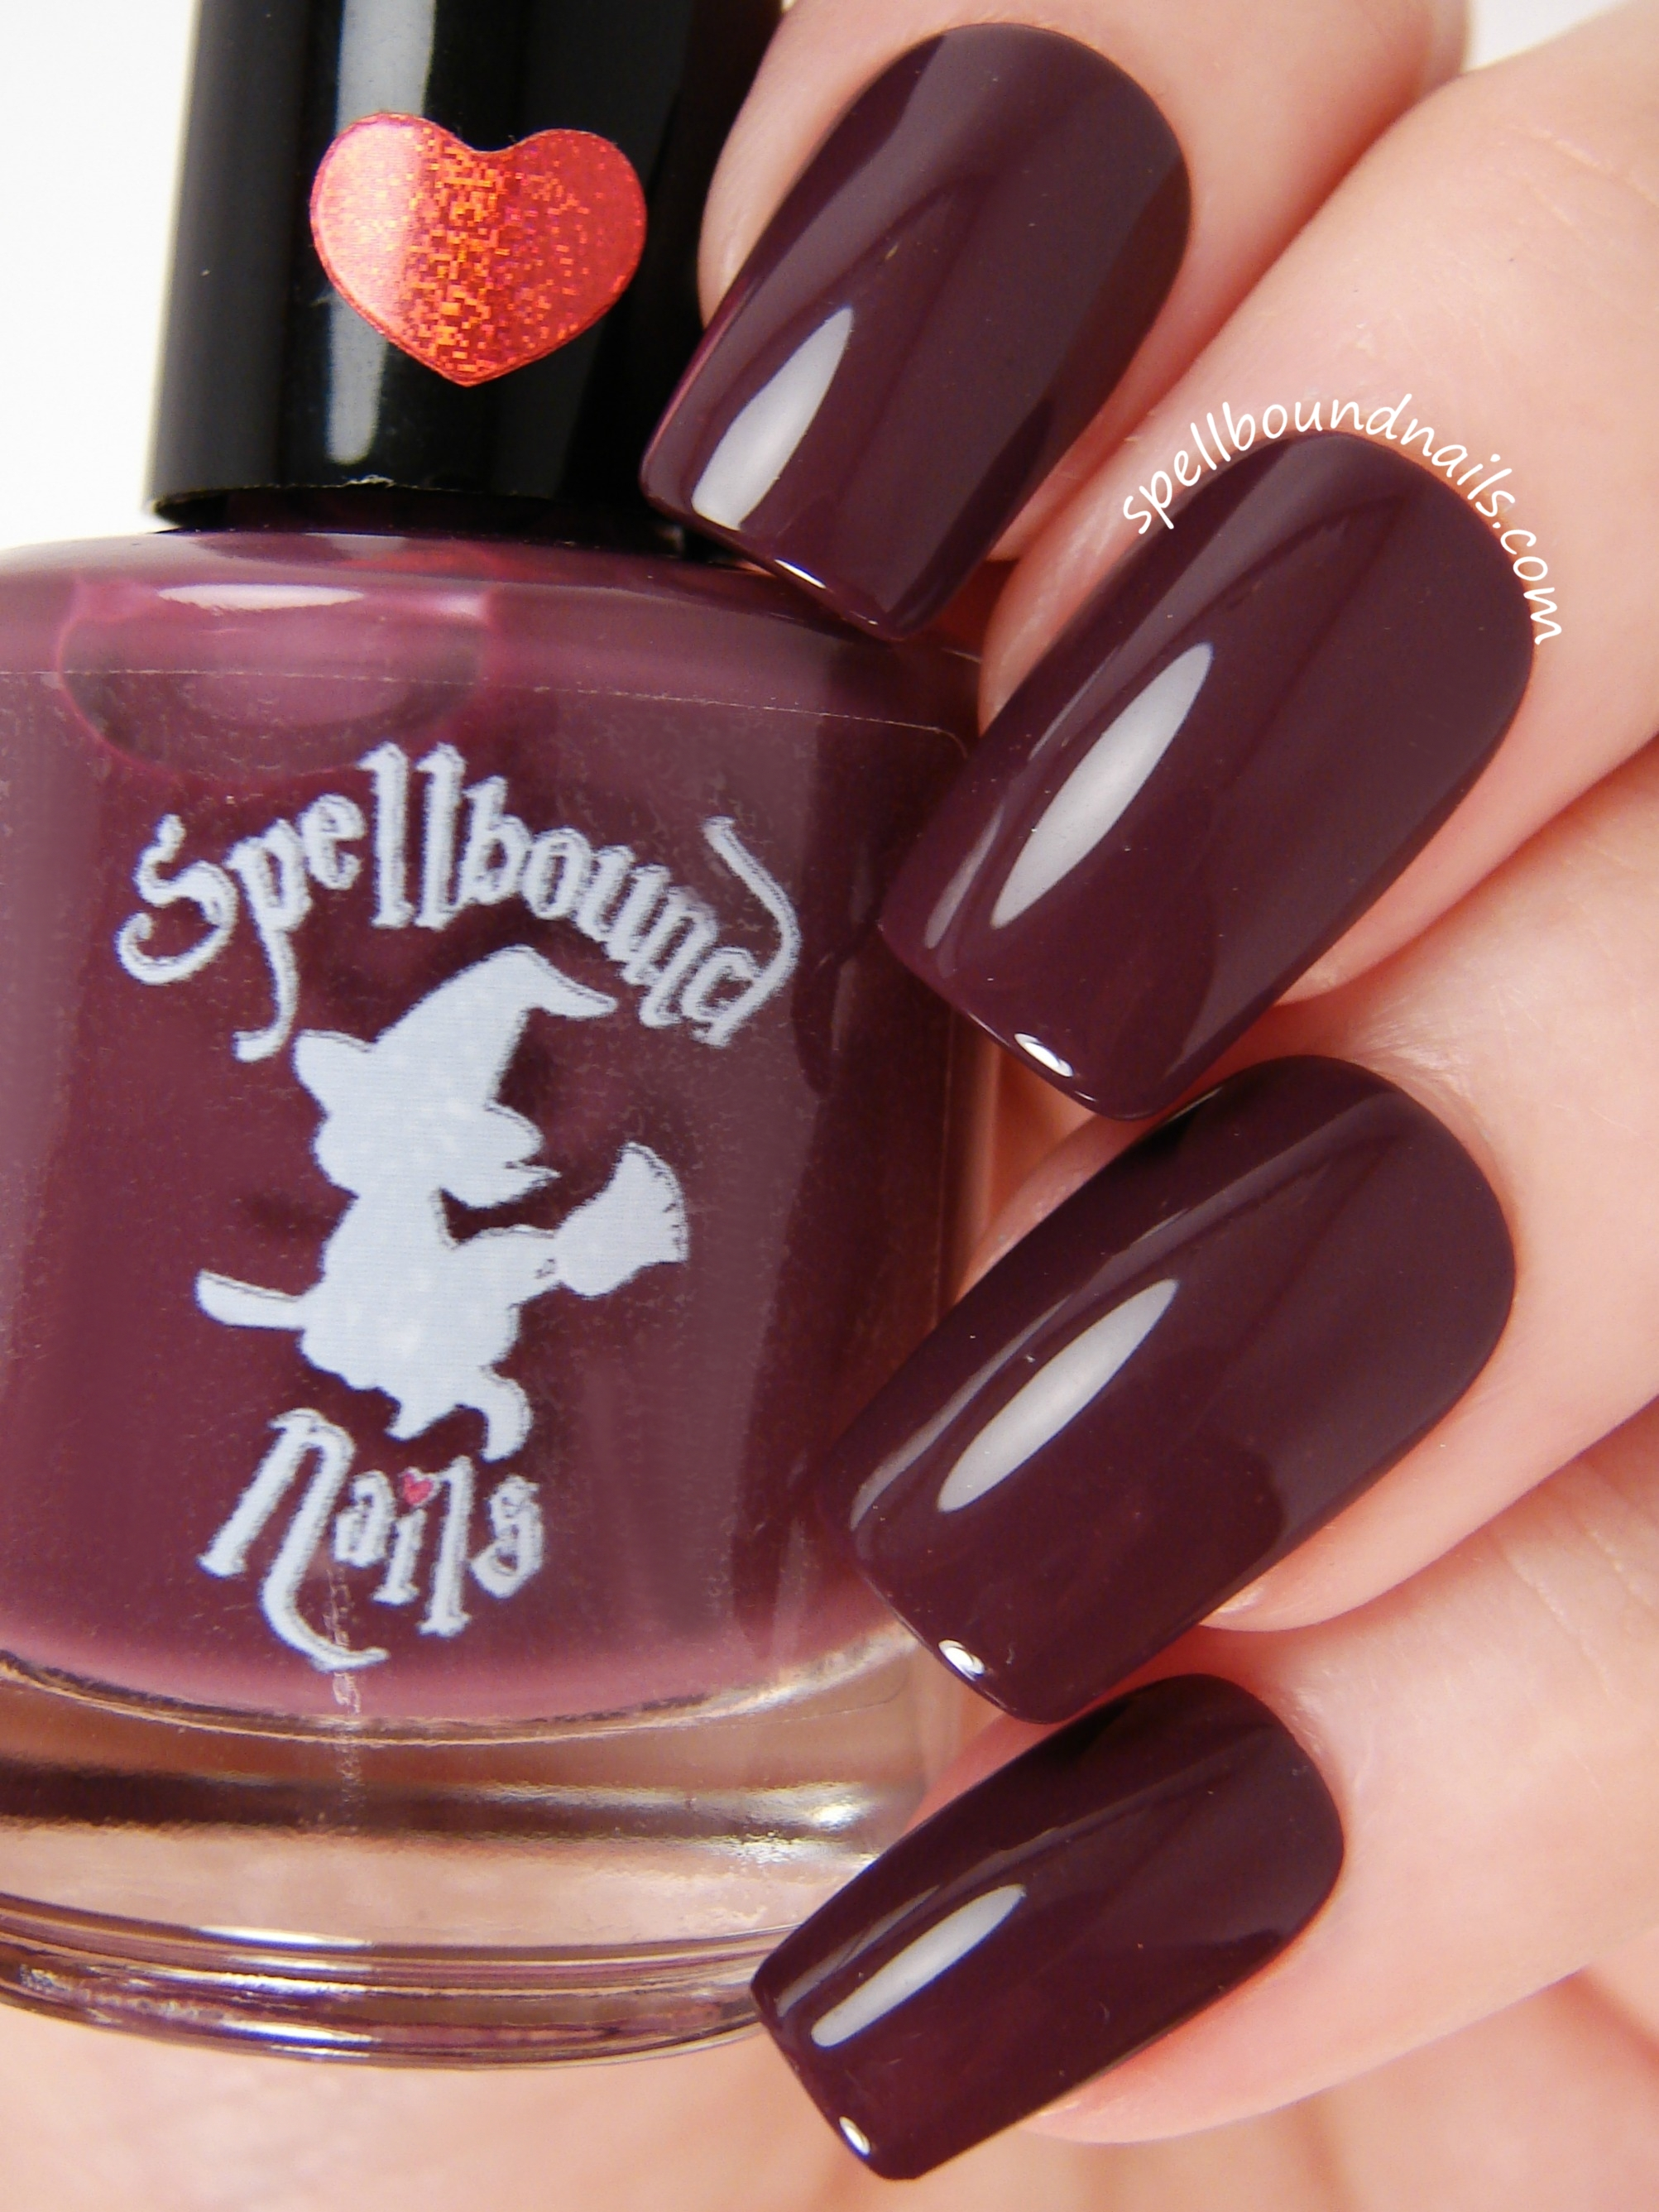 Bewitched - Dark Burgundy Red Creme Nail Polish · Spellbound Nails ...